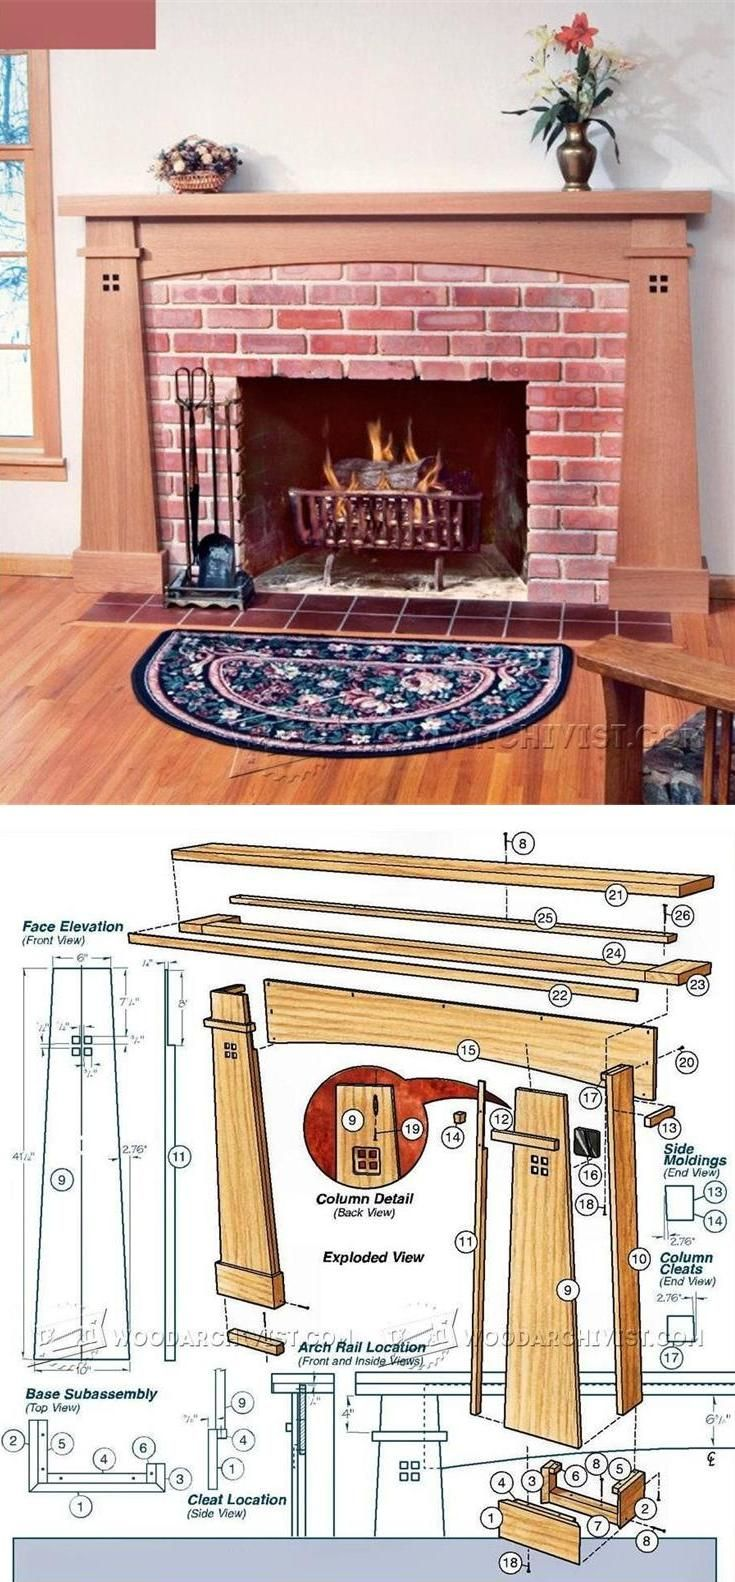 Fireplace Mantel Plans - Woodworking Plans and Projects | WoodArchivist.com